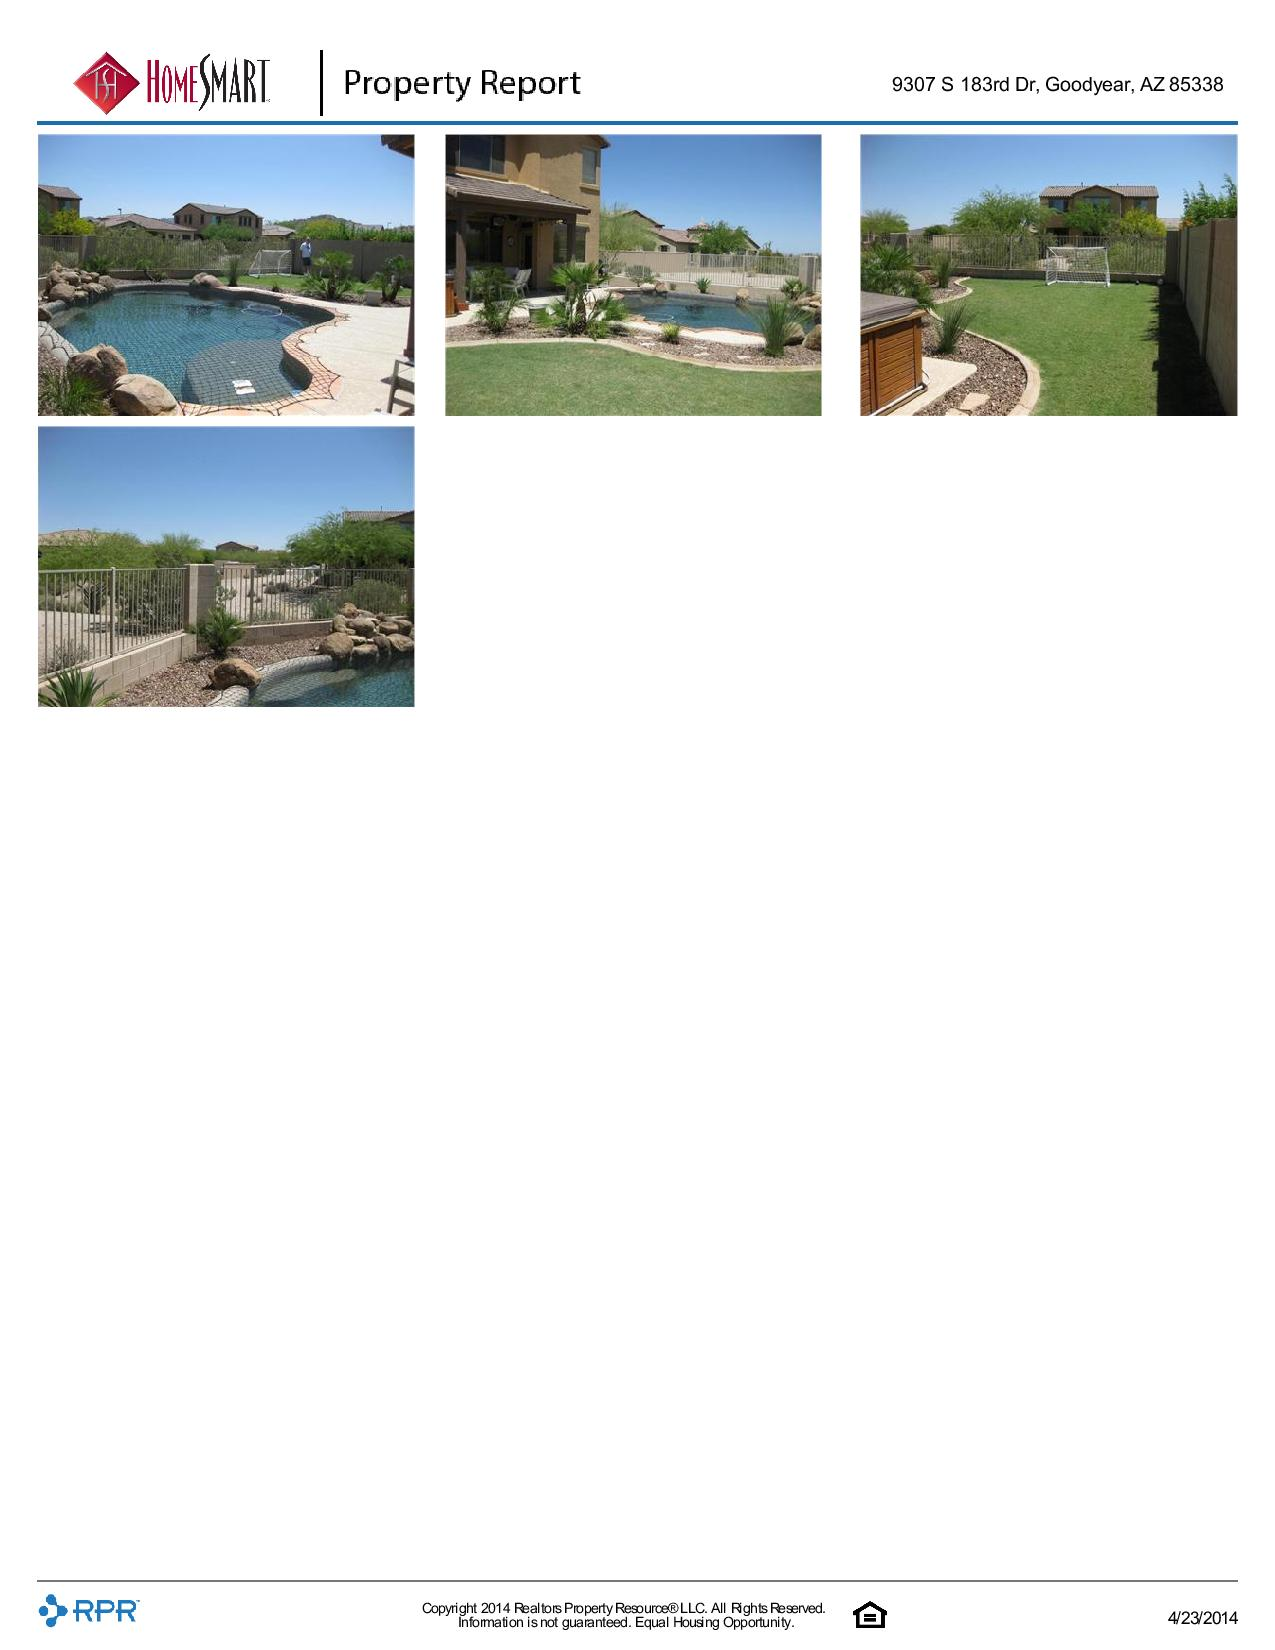 9307-S-183rd-Dr-Goodyear-AZ-85338-page-006